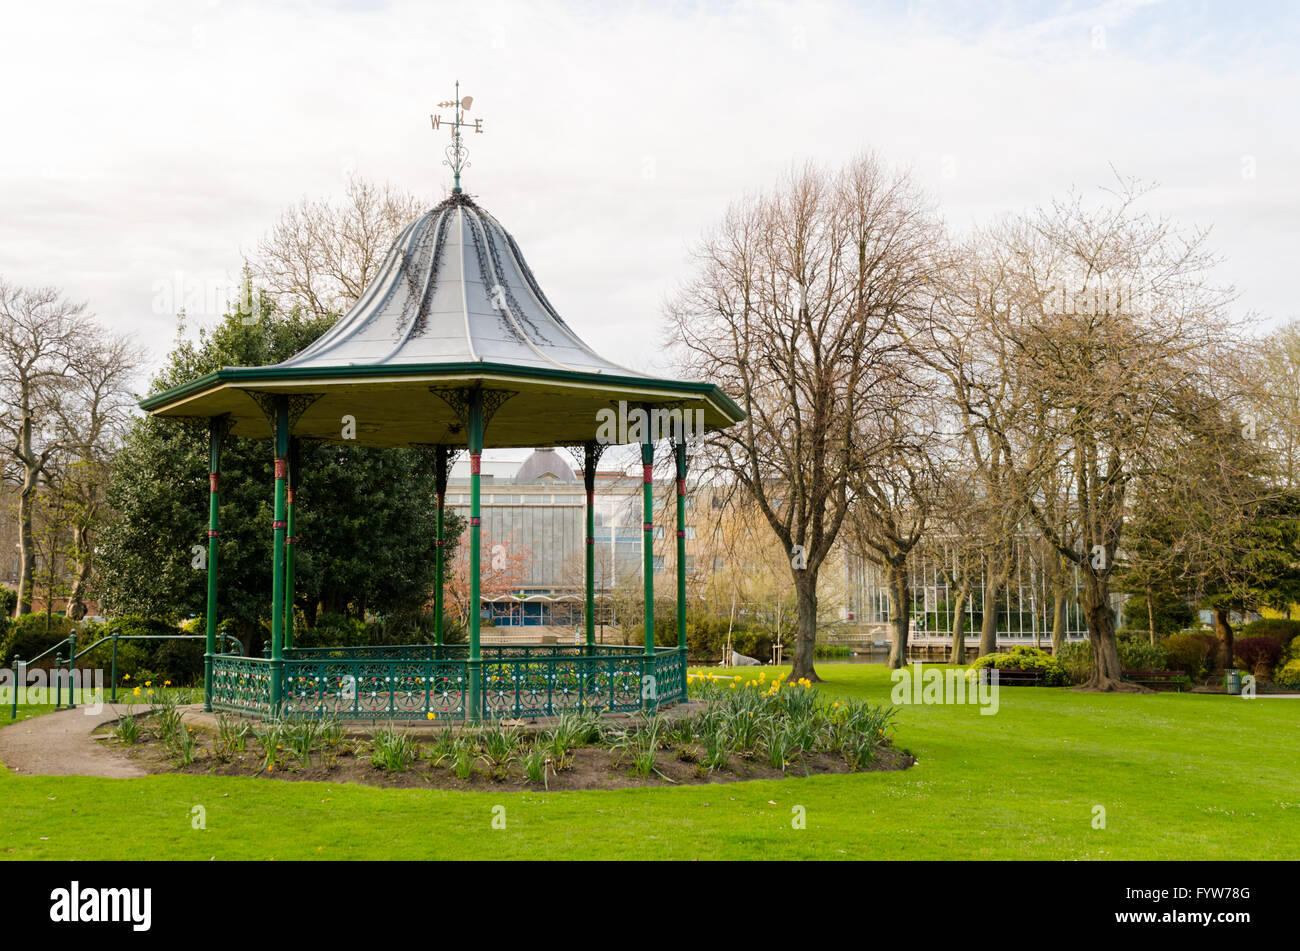 Victorian Bandstand, located in Mowbray Park, Sunderland, Tyne & Wear - Stock Image